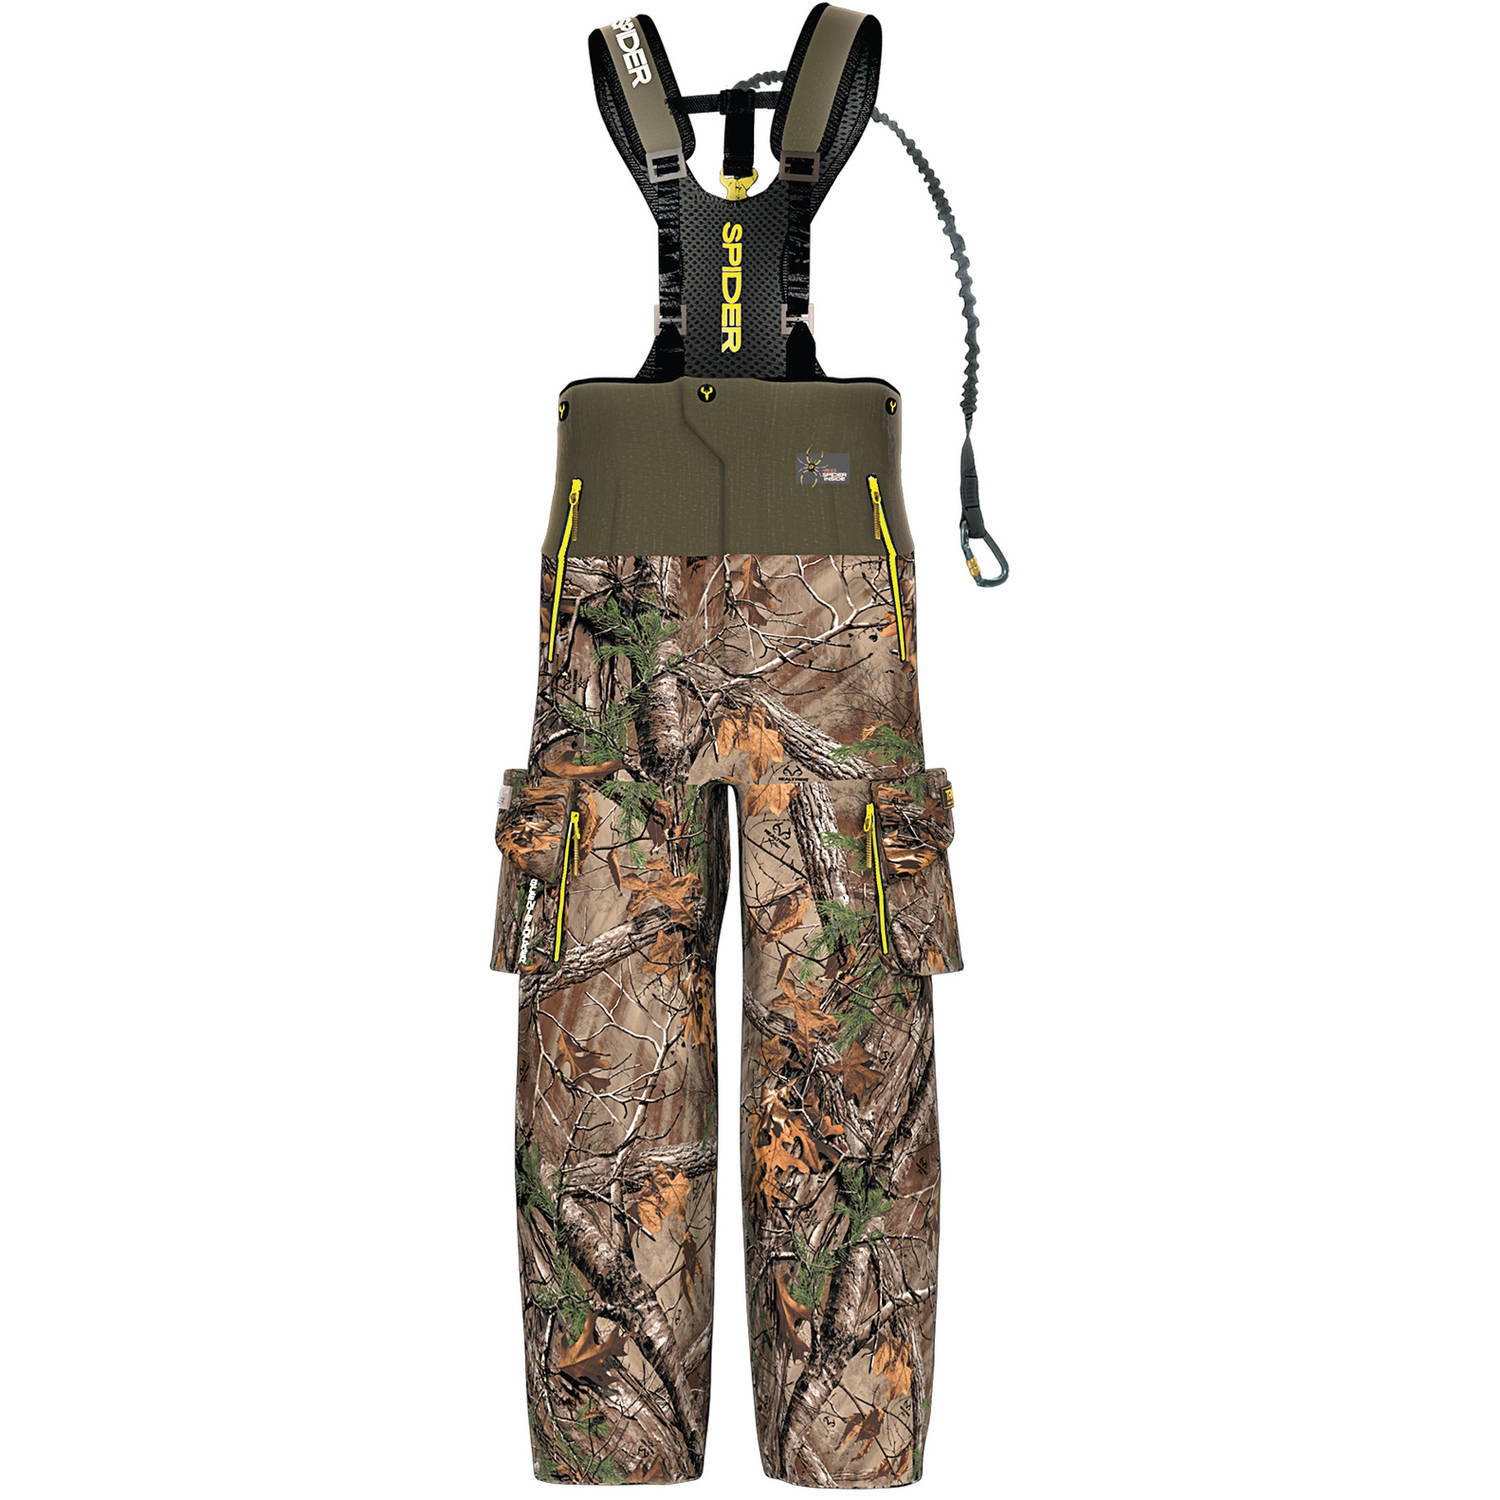 Men's Outfitter Safety Bibs with Trinity Technology SpiderWeb ScentBlocker, Available in Multiple Sizes by ScentBlocker